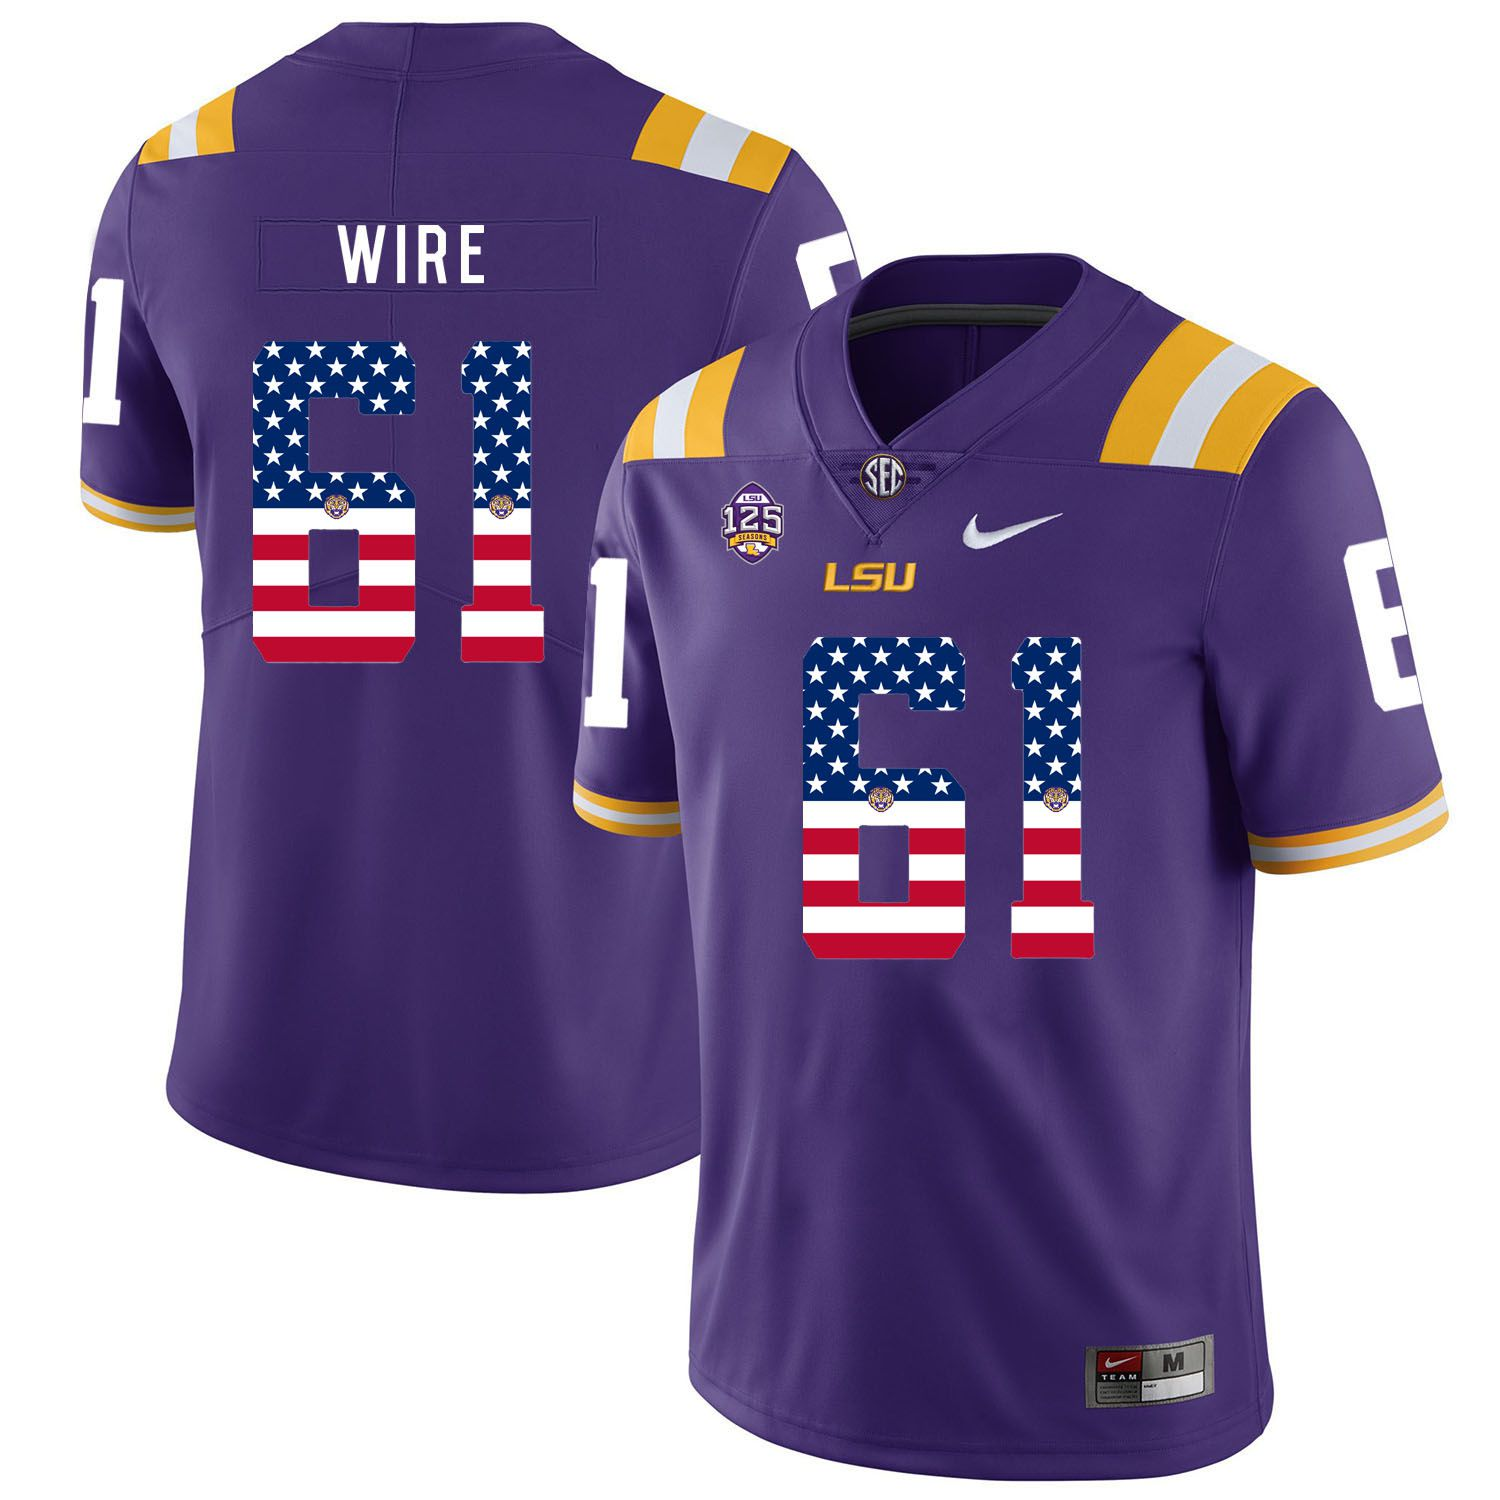 Men LSU Tigers 61 Wire Purple Flag Customized NCAA Jerseys